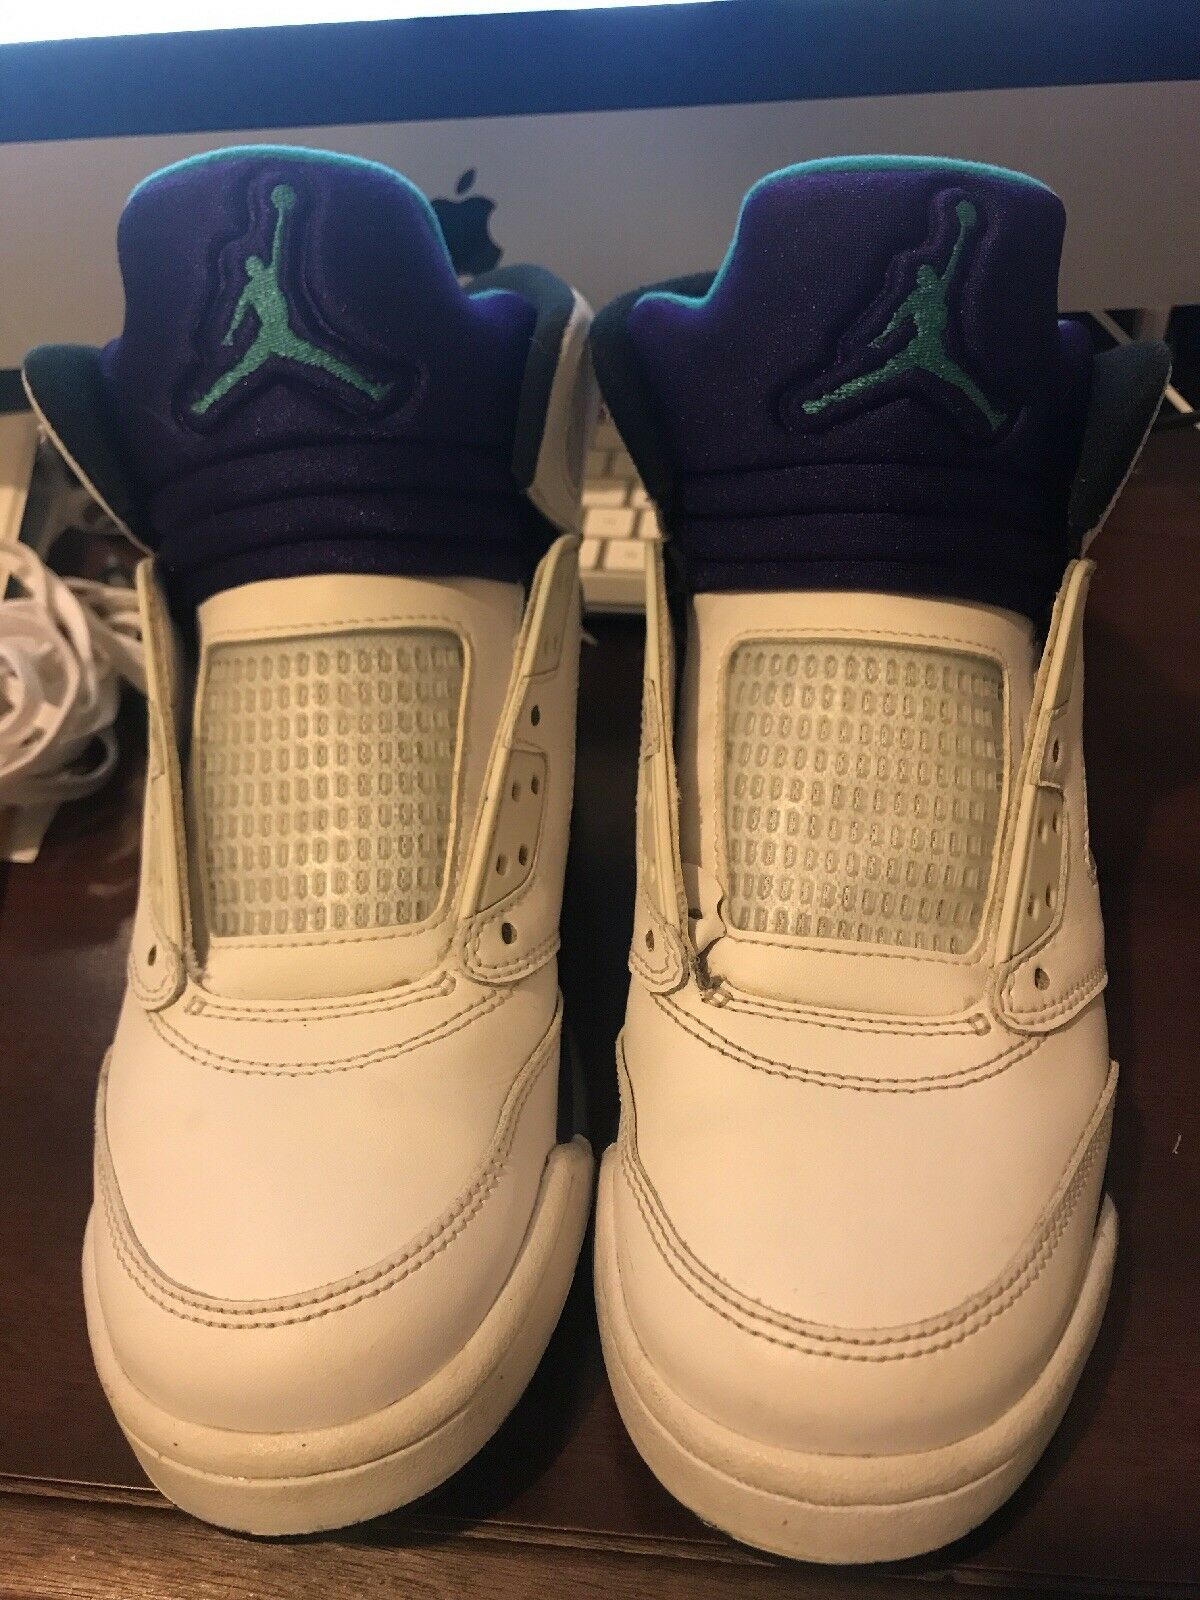 Nike air jordan retro 5 grape size 6y